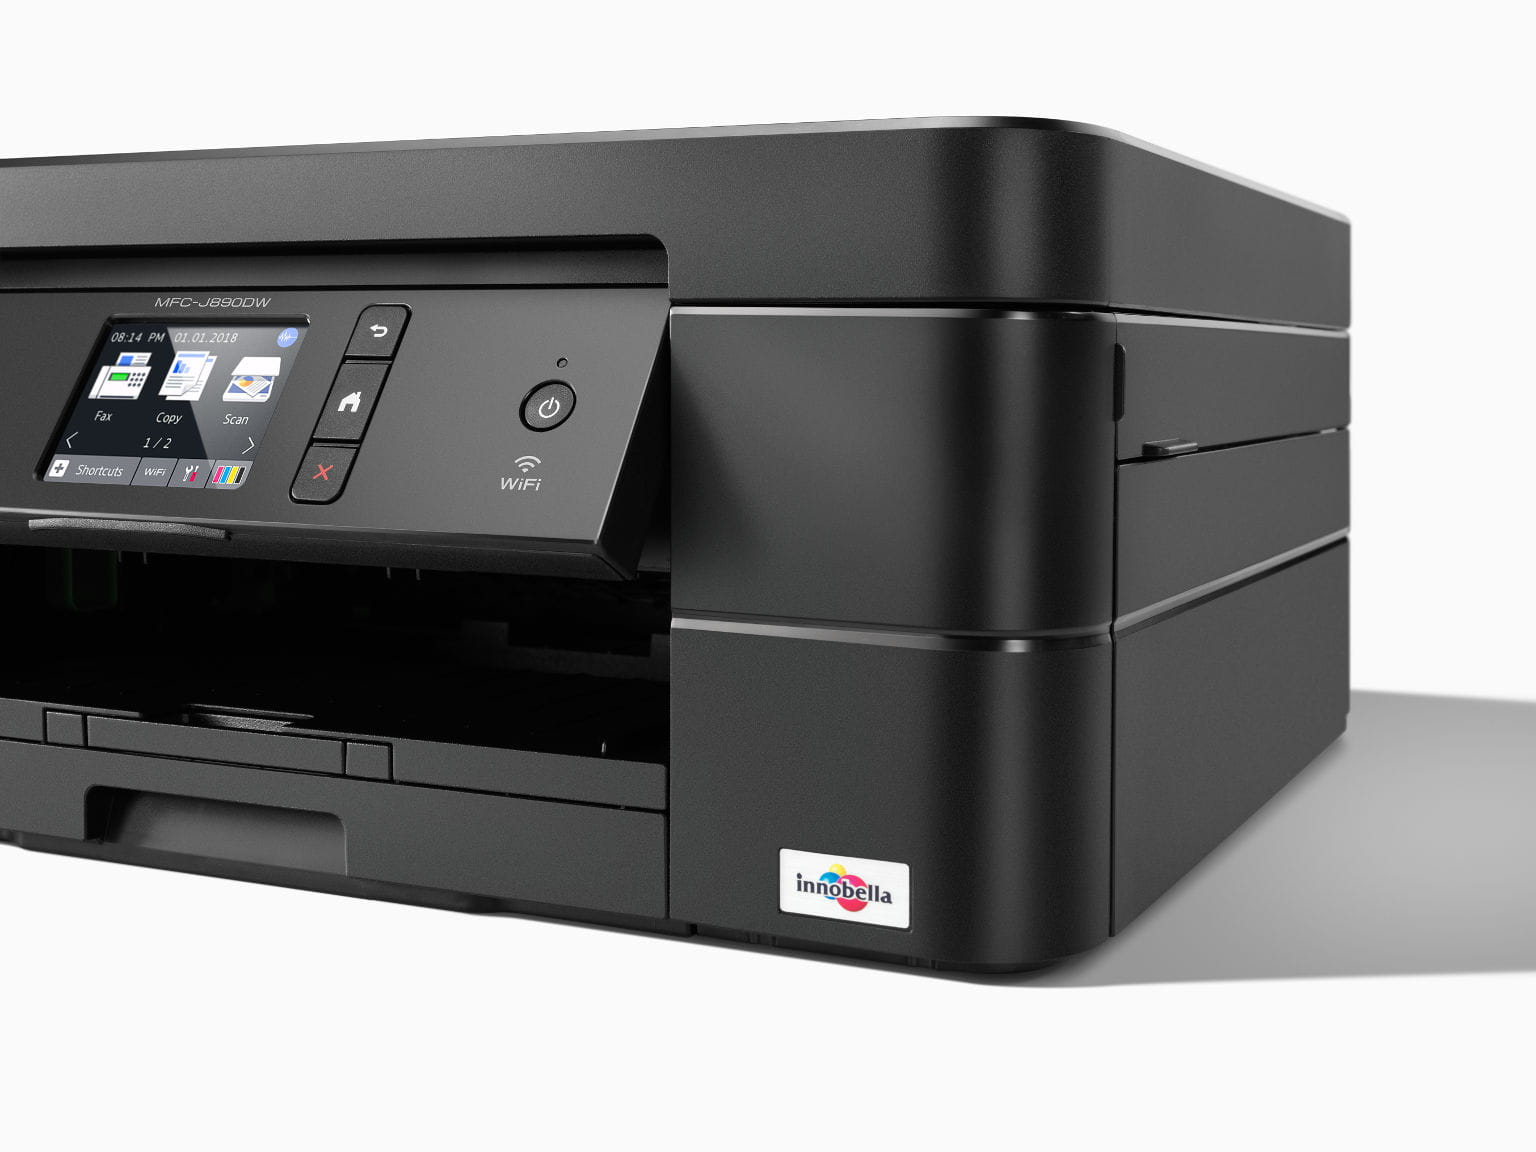 Impressora Multifuncional de Tinta Brother MFC-J890DW